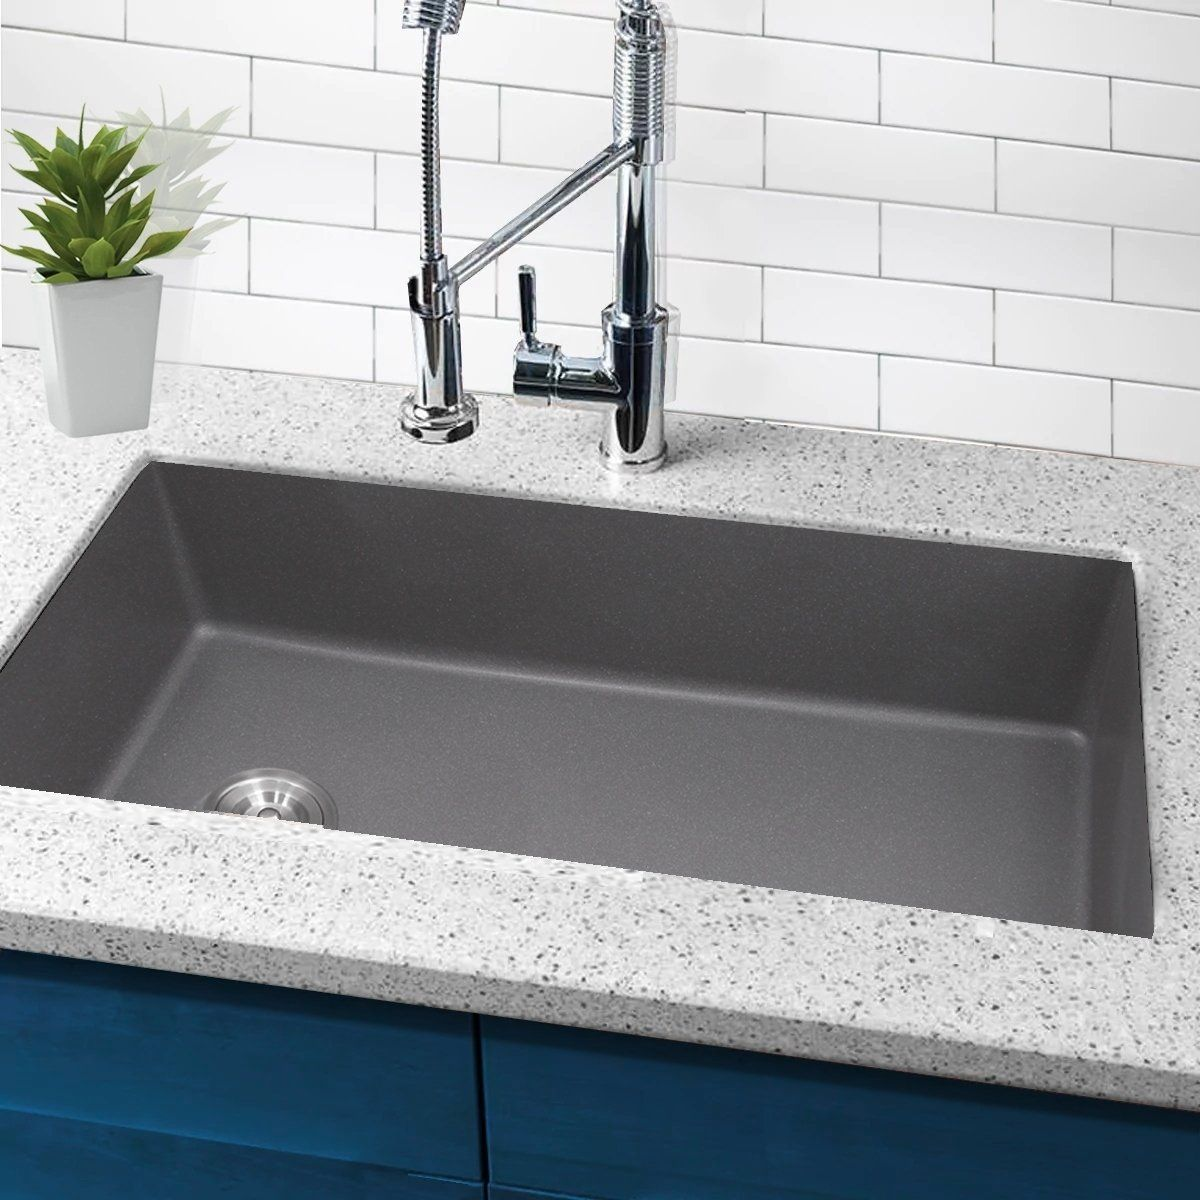 Highpoint Collection 32 Inch Granite Composite Sink With Side Drain Gray Products In 2019 Composite Sinks Granite Composite Sinks Sink